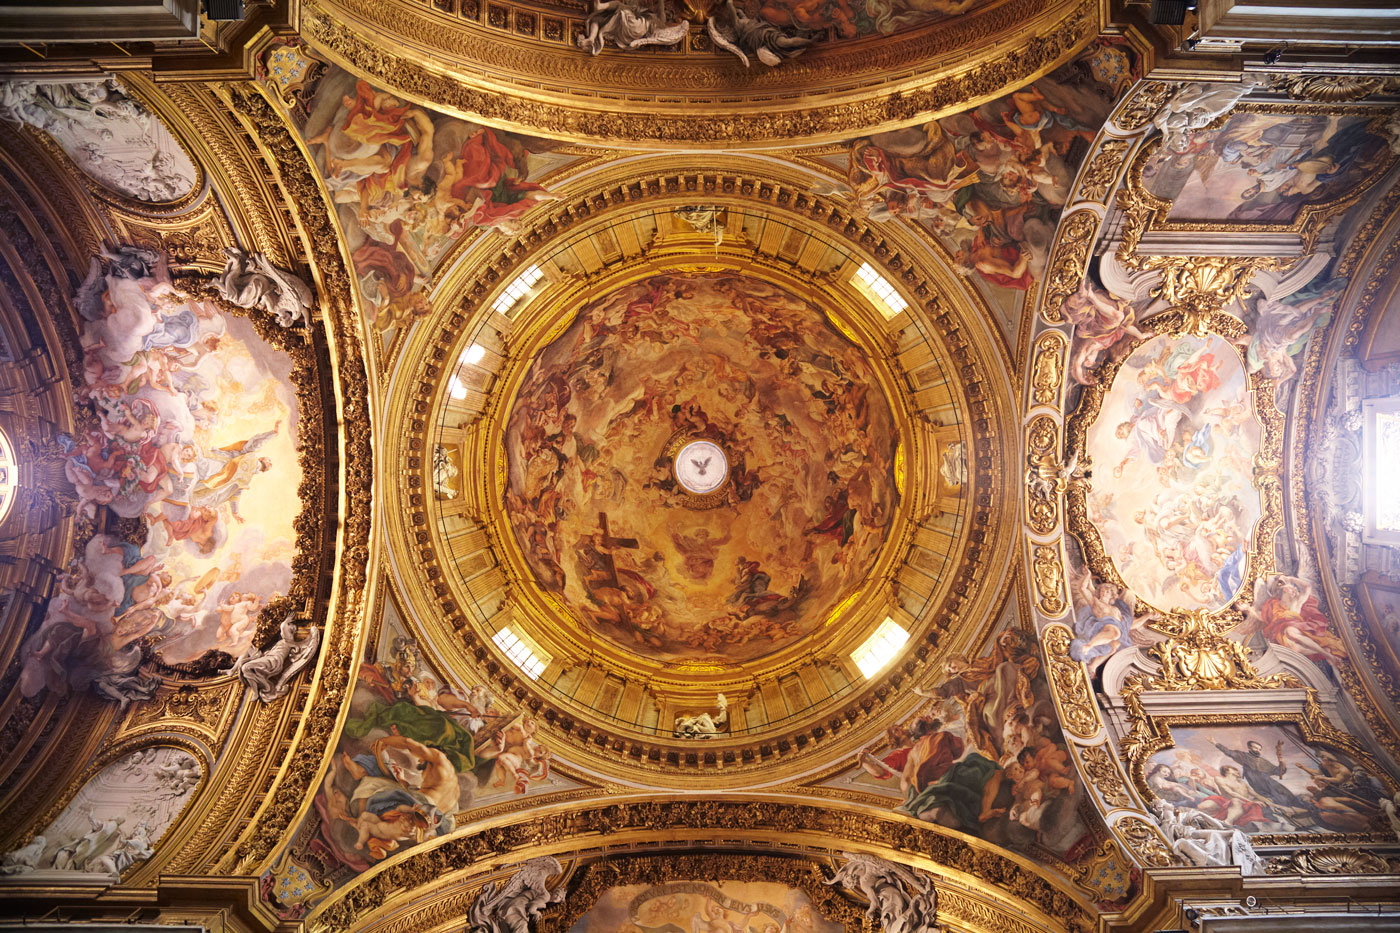 Dome of Chiesa del Ges, Rome, Italy